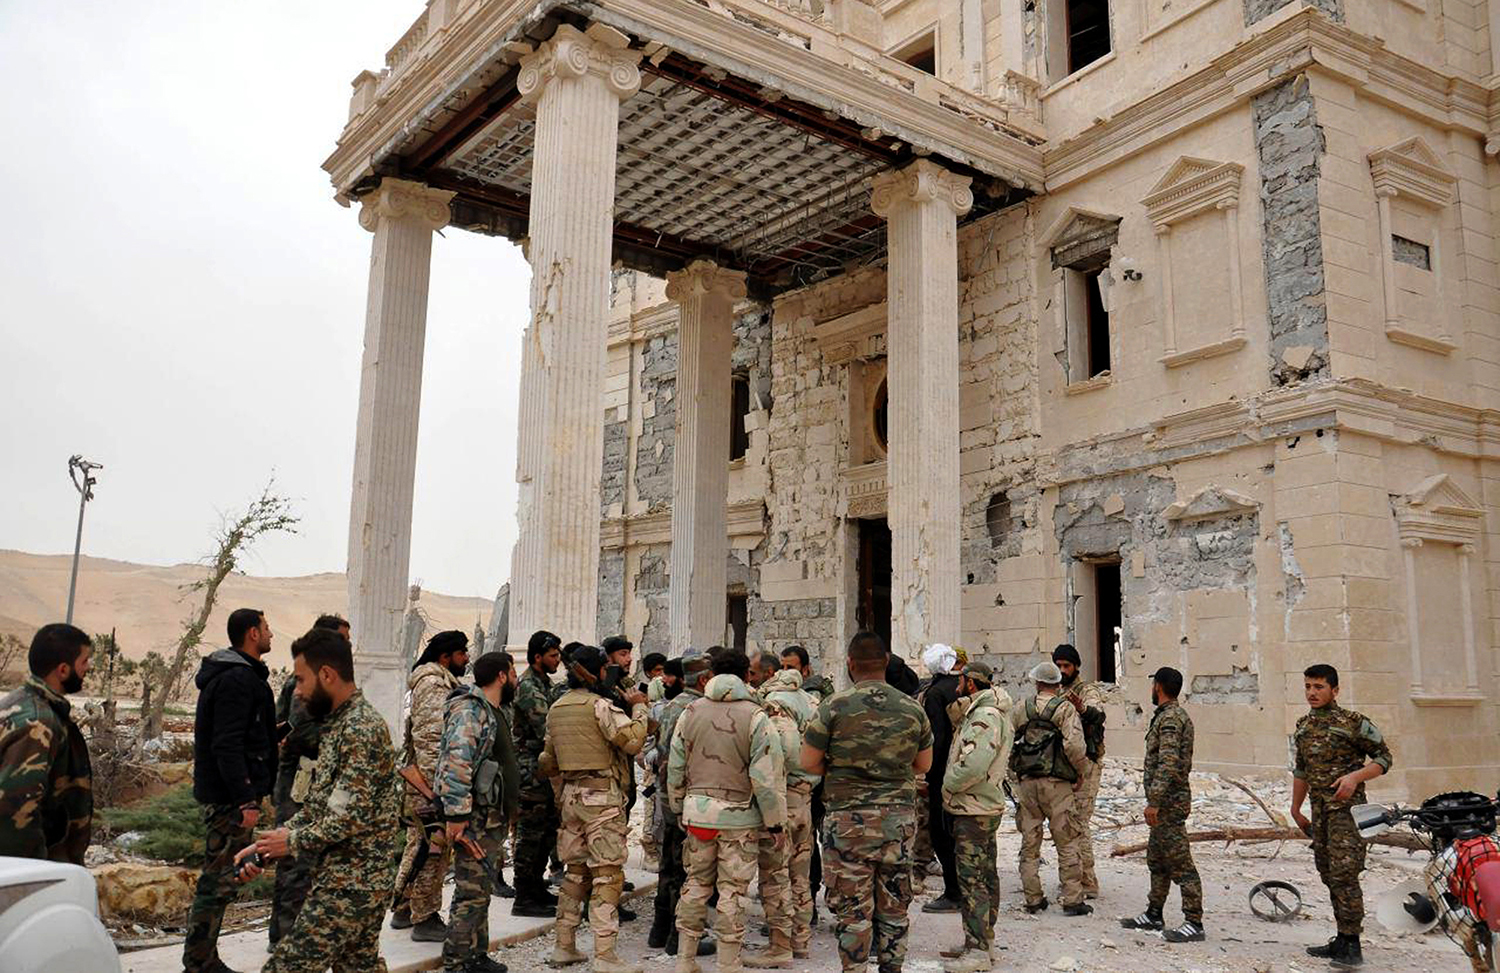 FILE -- In this file photo released March 24, 2016, by the Syrian official news agency SANA, Syrian government soldiers gather outside a damaged palace, in Palmyra, central Syria. Palmyra, the archaeological gem that Islamic State fighters retook Sunday, Dec. 11, 2016, from Syrian troops is a desert oasis surrounded by palm trees, and a UNESCO world heritage site, that boasts 2,000-year-old towering Roman-era colonnades and priceless artifacts. It is also a strategic crossroads linking the Syrian capital, Damascus, with the country's east and neighboring Iraq. (SANA via AP, File)